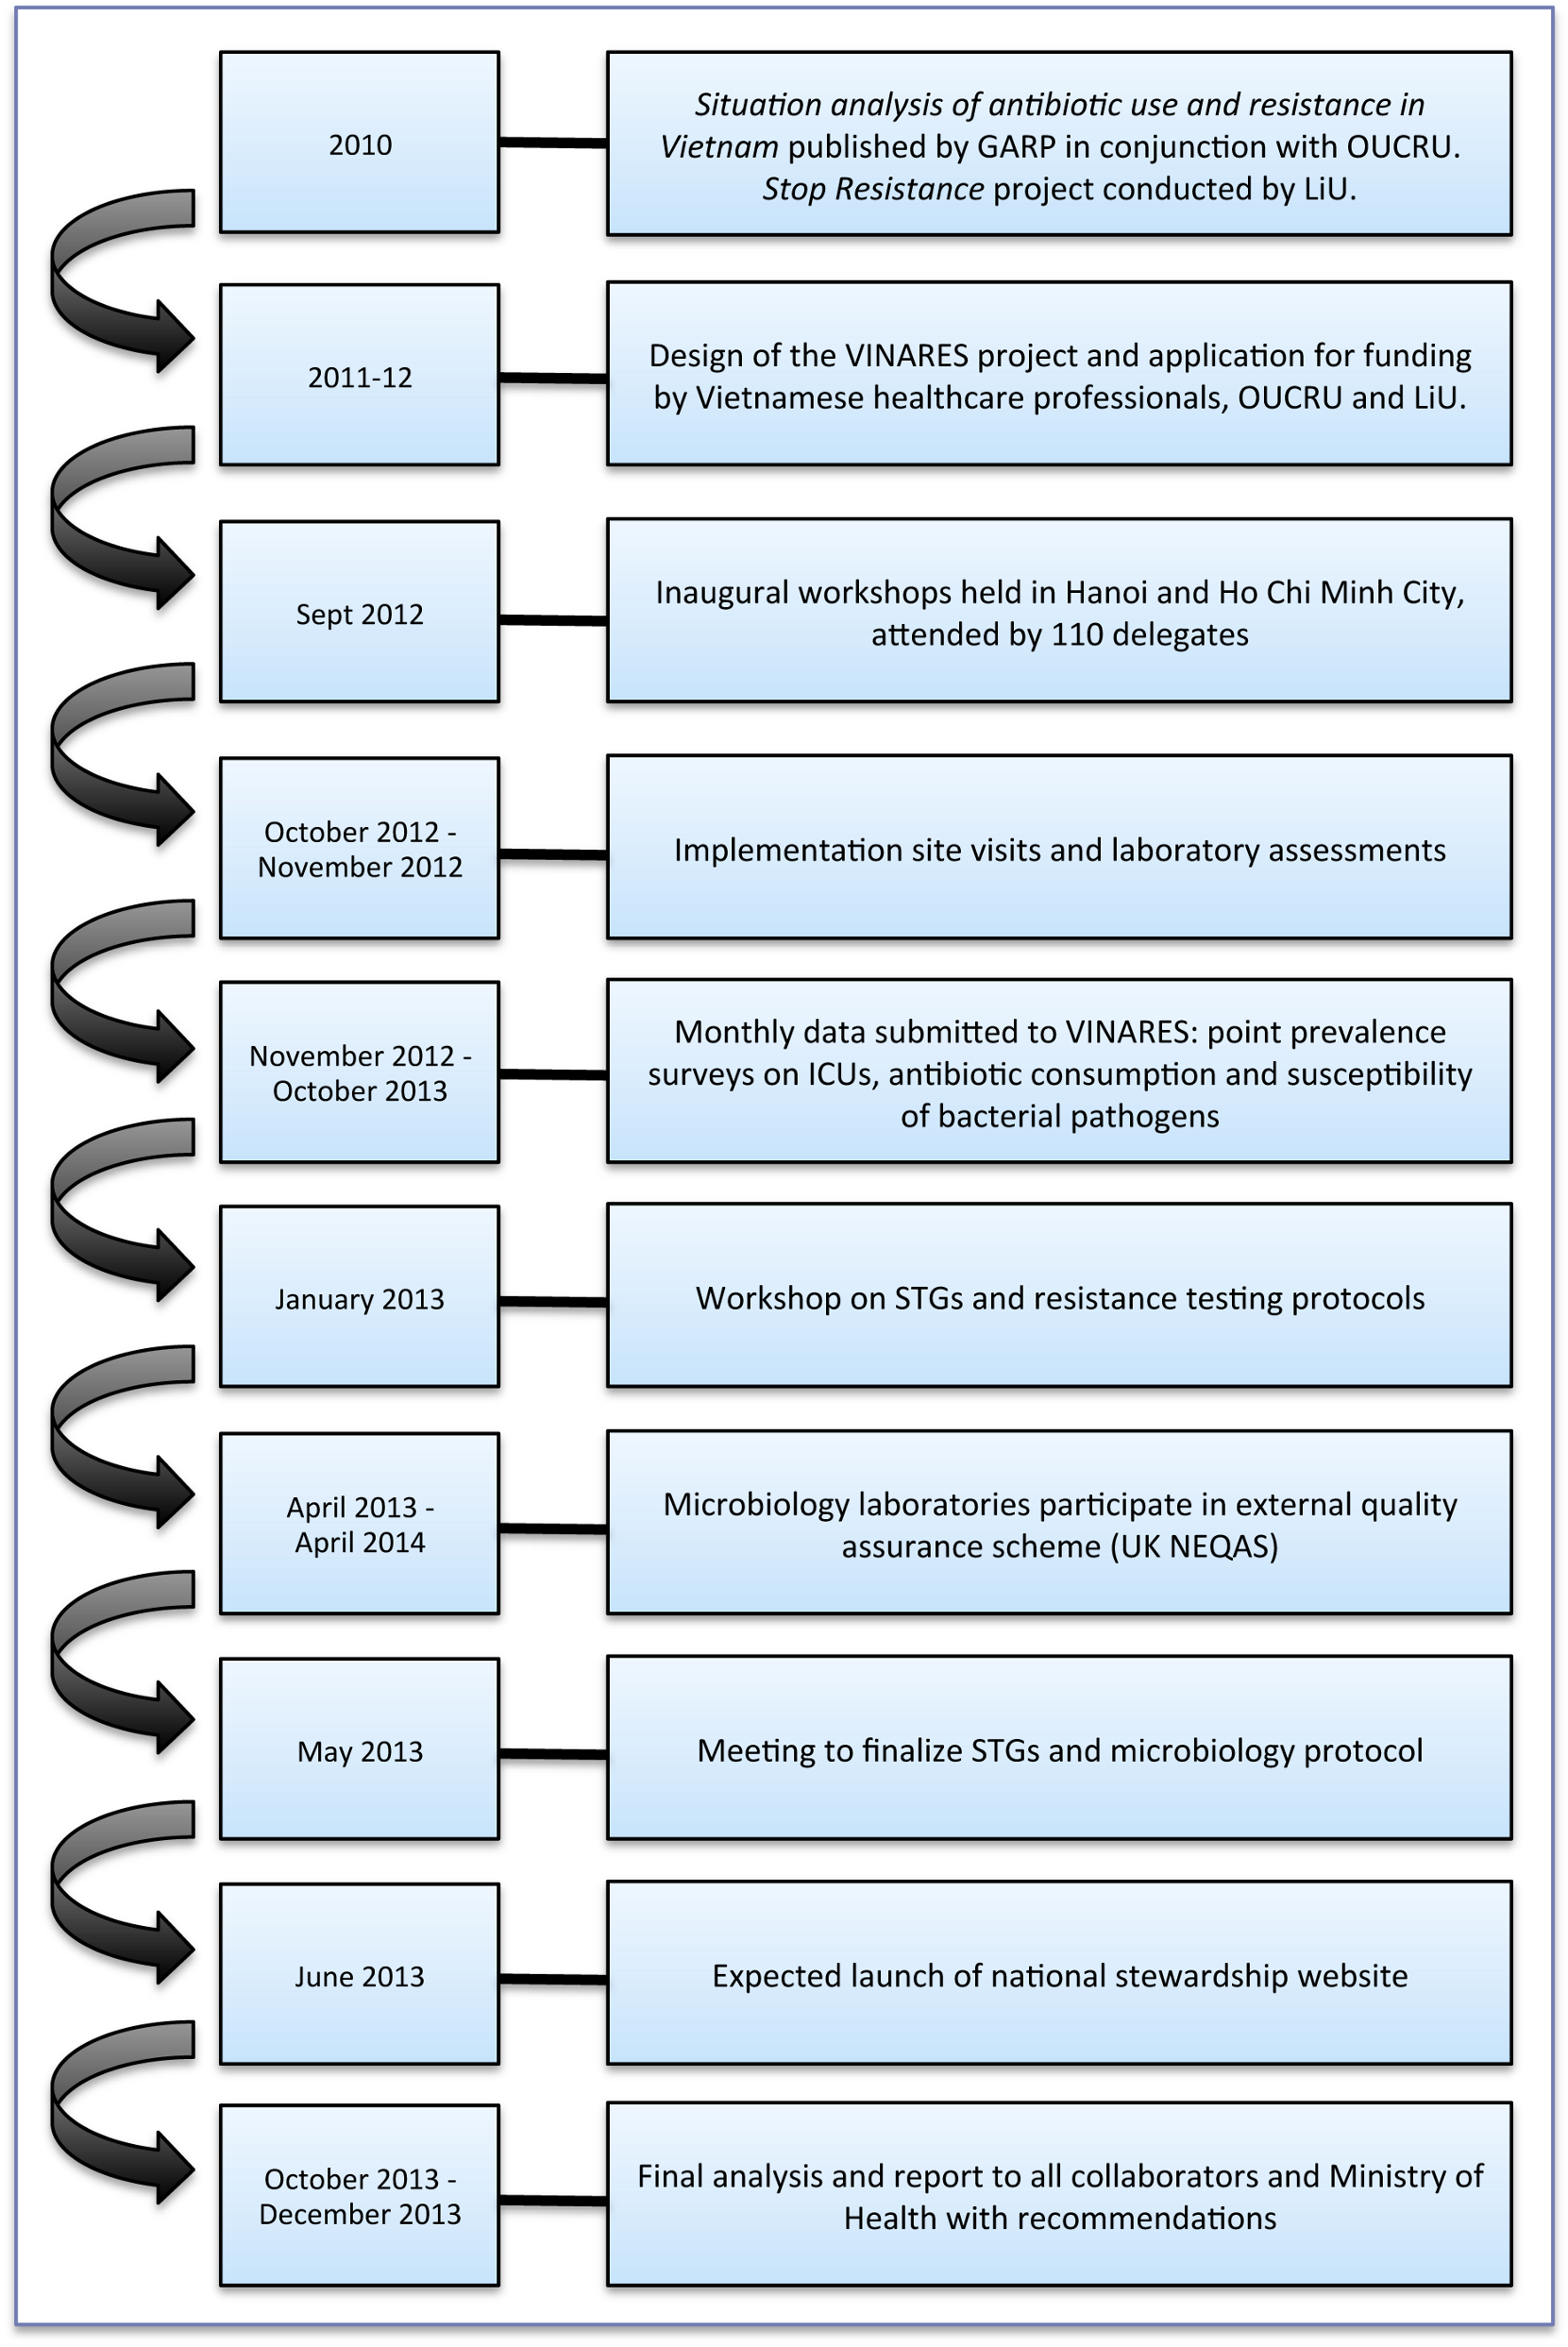 A timeline to illustrate the conception and implementation of the VINARES project.